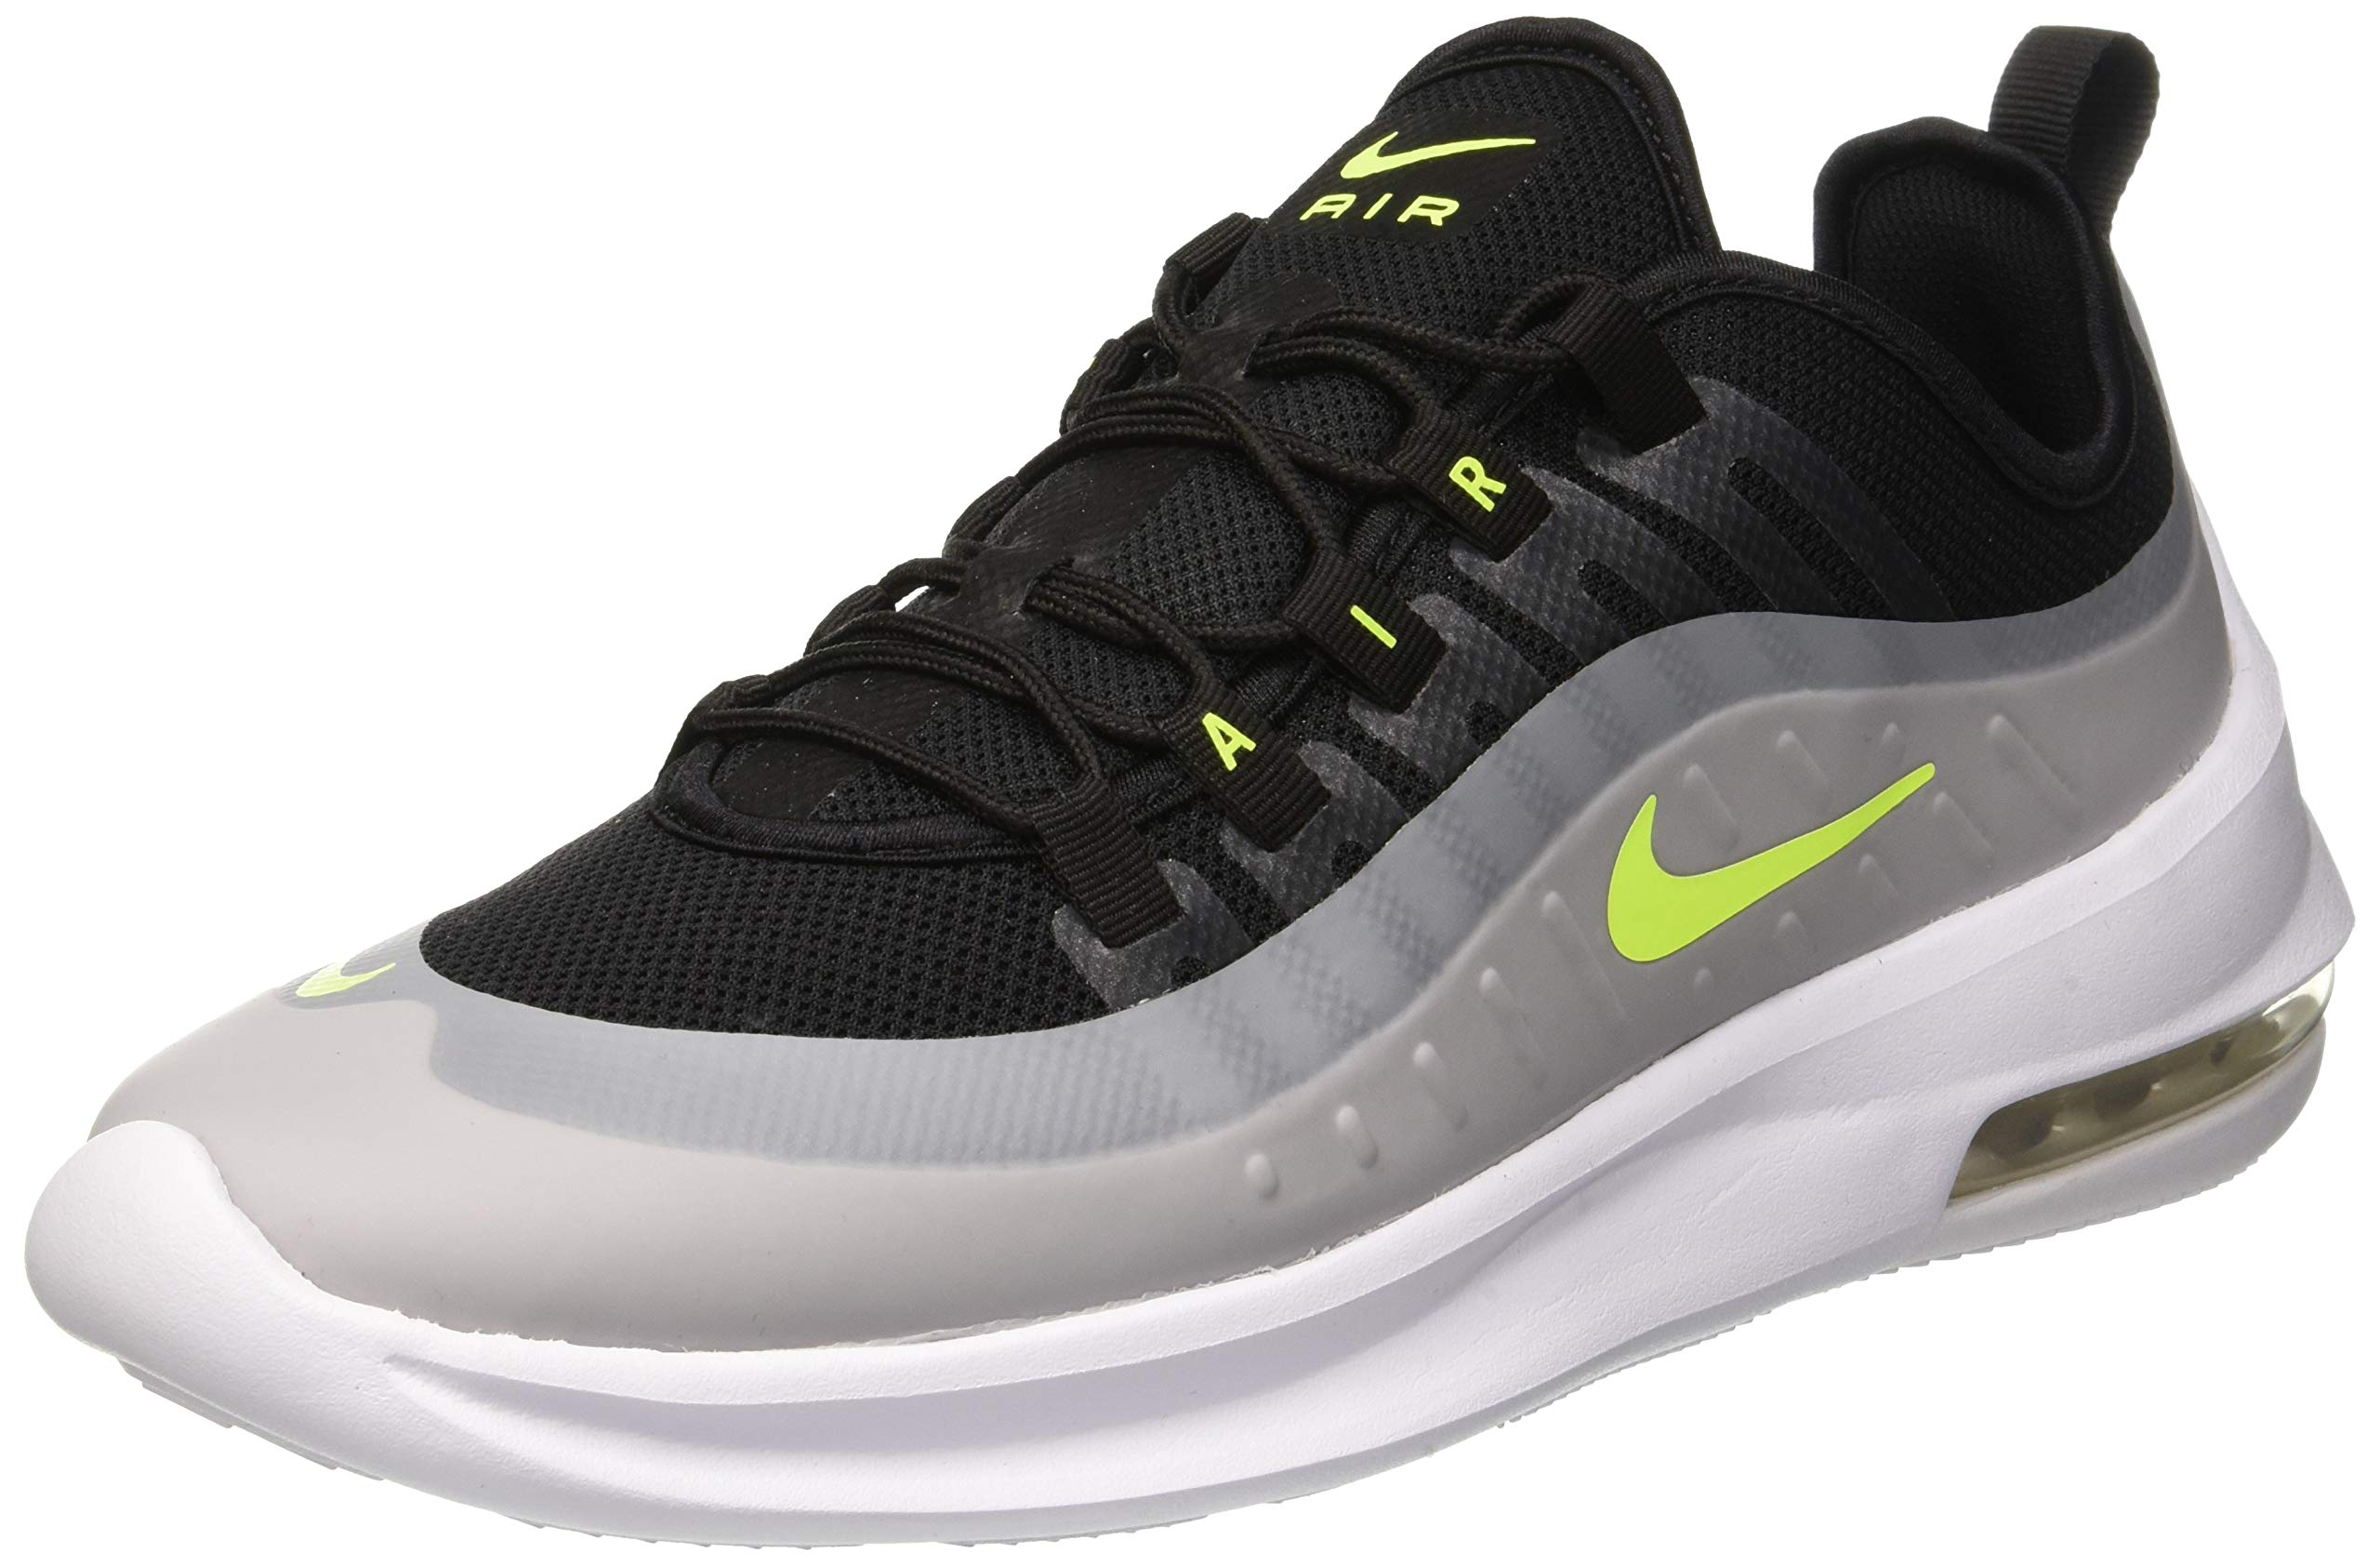 389e06d2b9 Galleon - Nike Men's Air Max Axis Running Shoe, Black/Volt-Wolf  Grey-Anthracite, 8.5